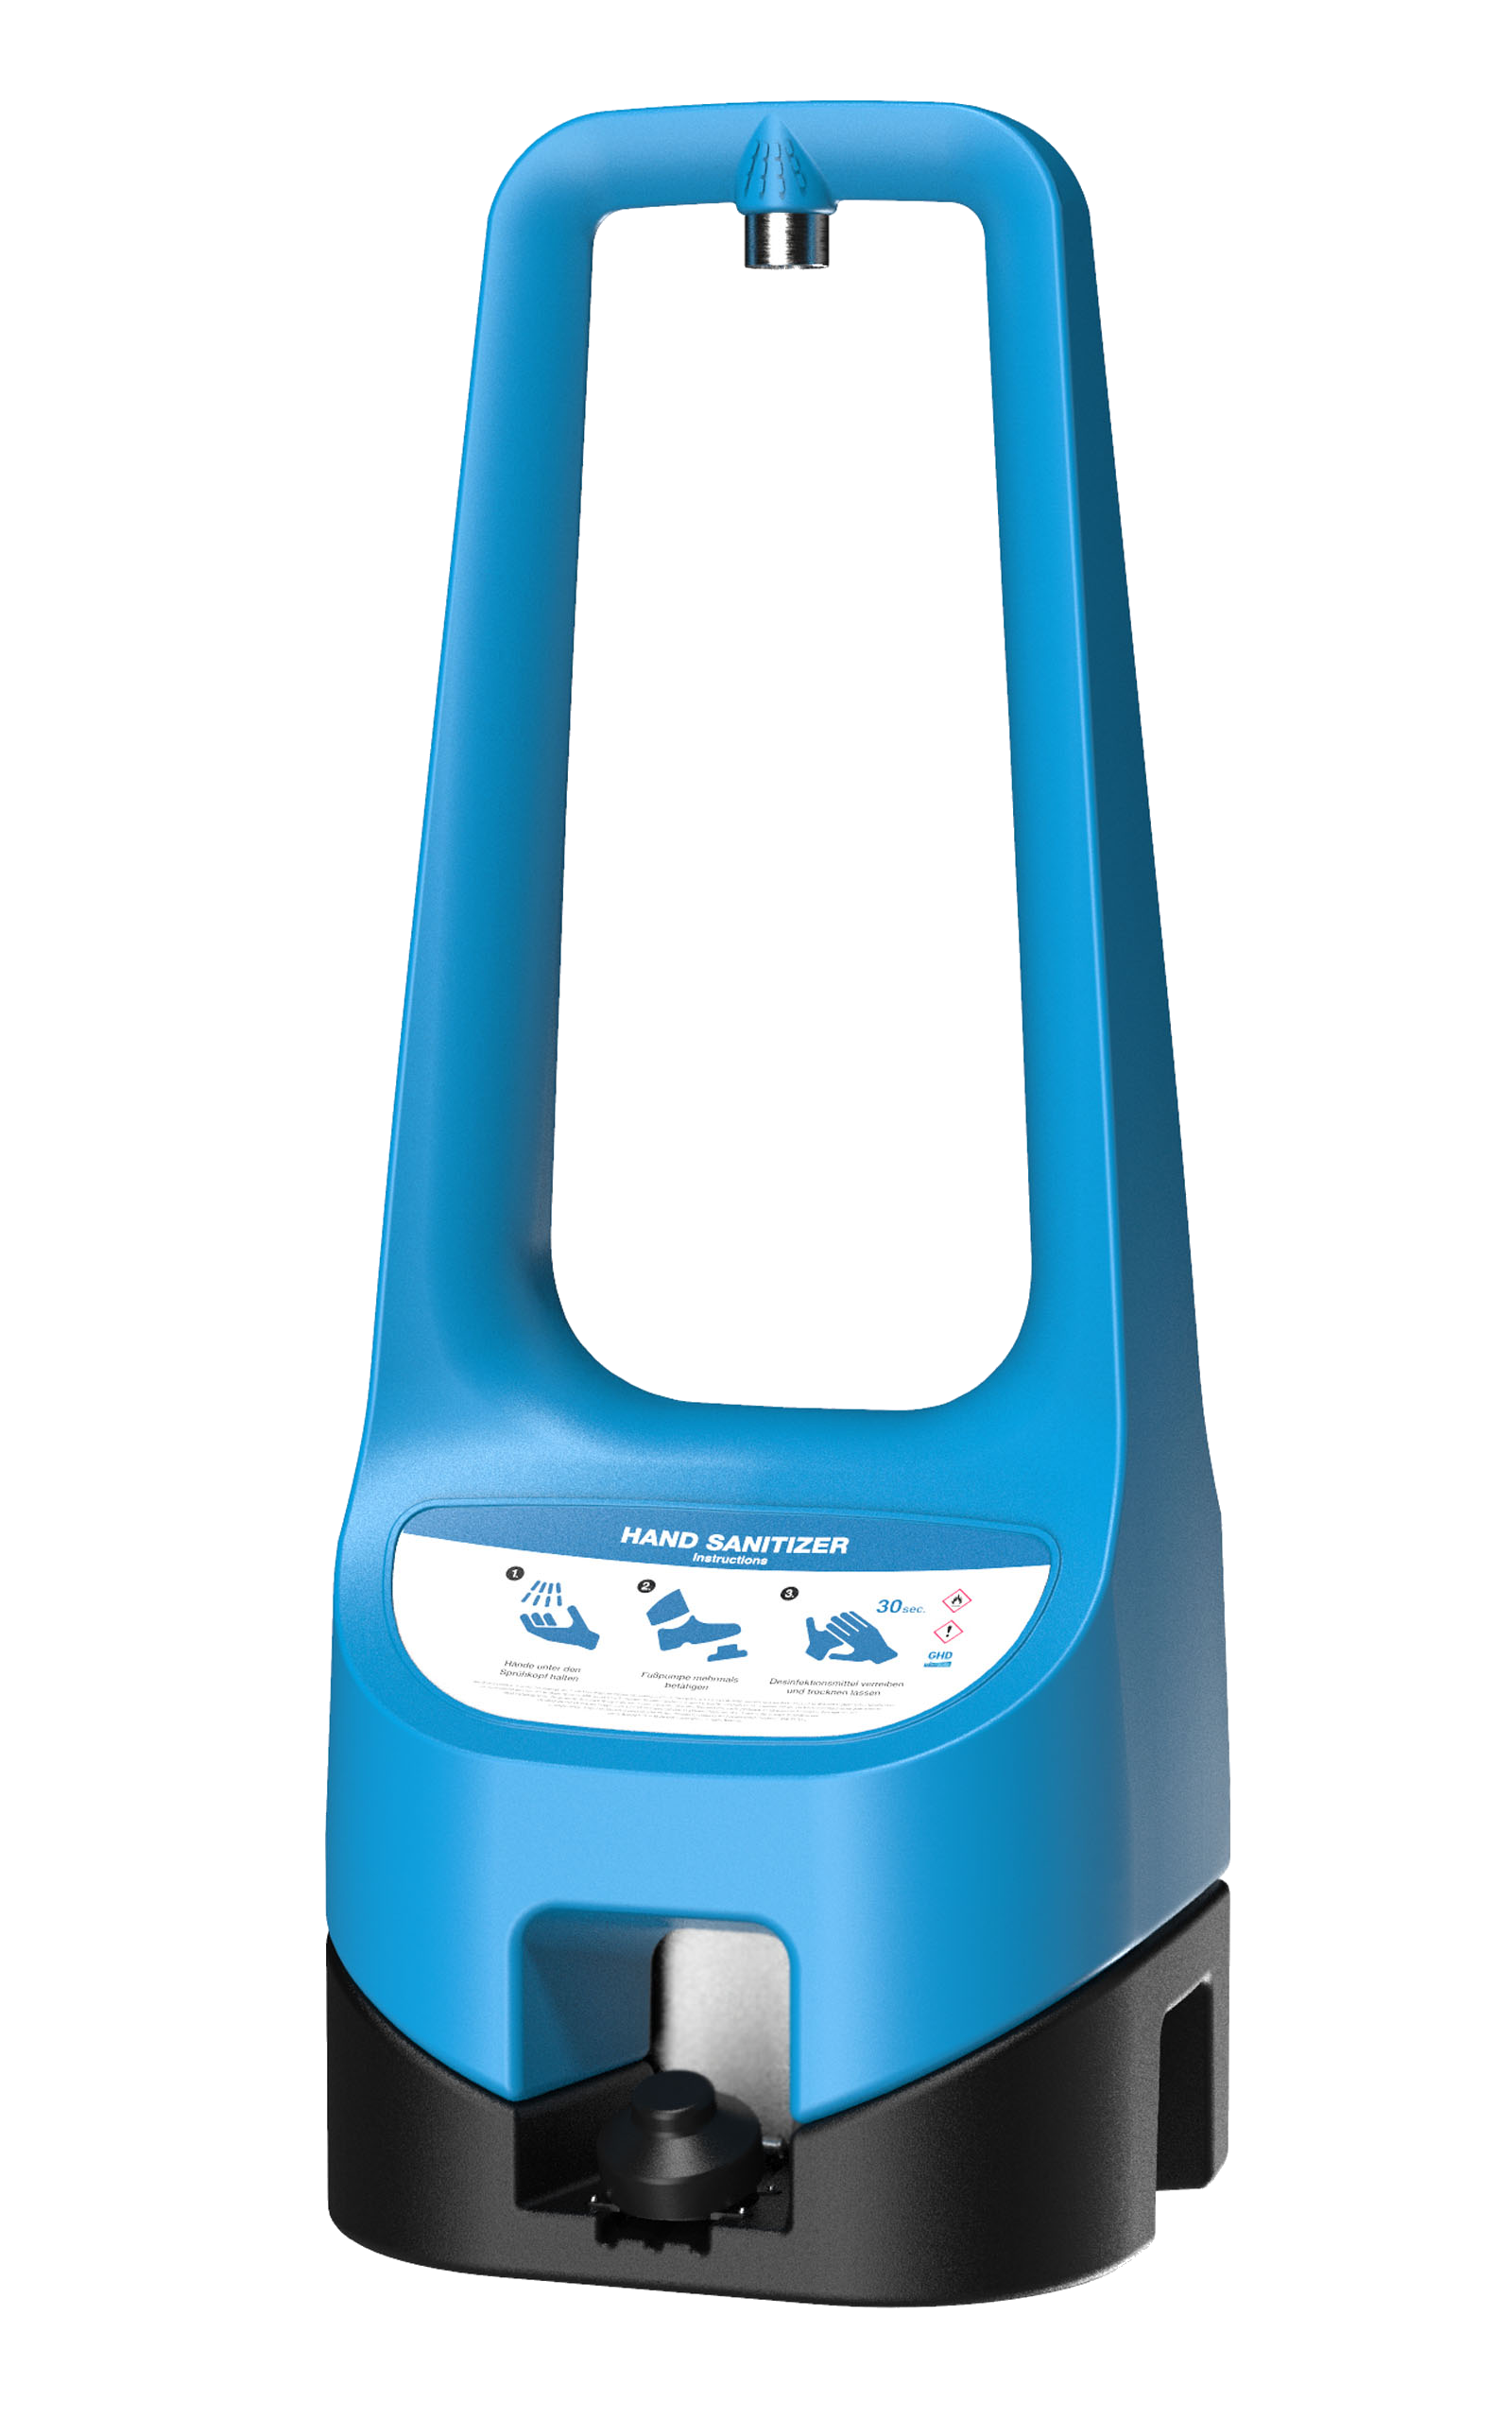 A blue Toi Care freestanding hand sanitizer.